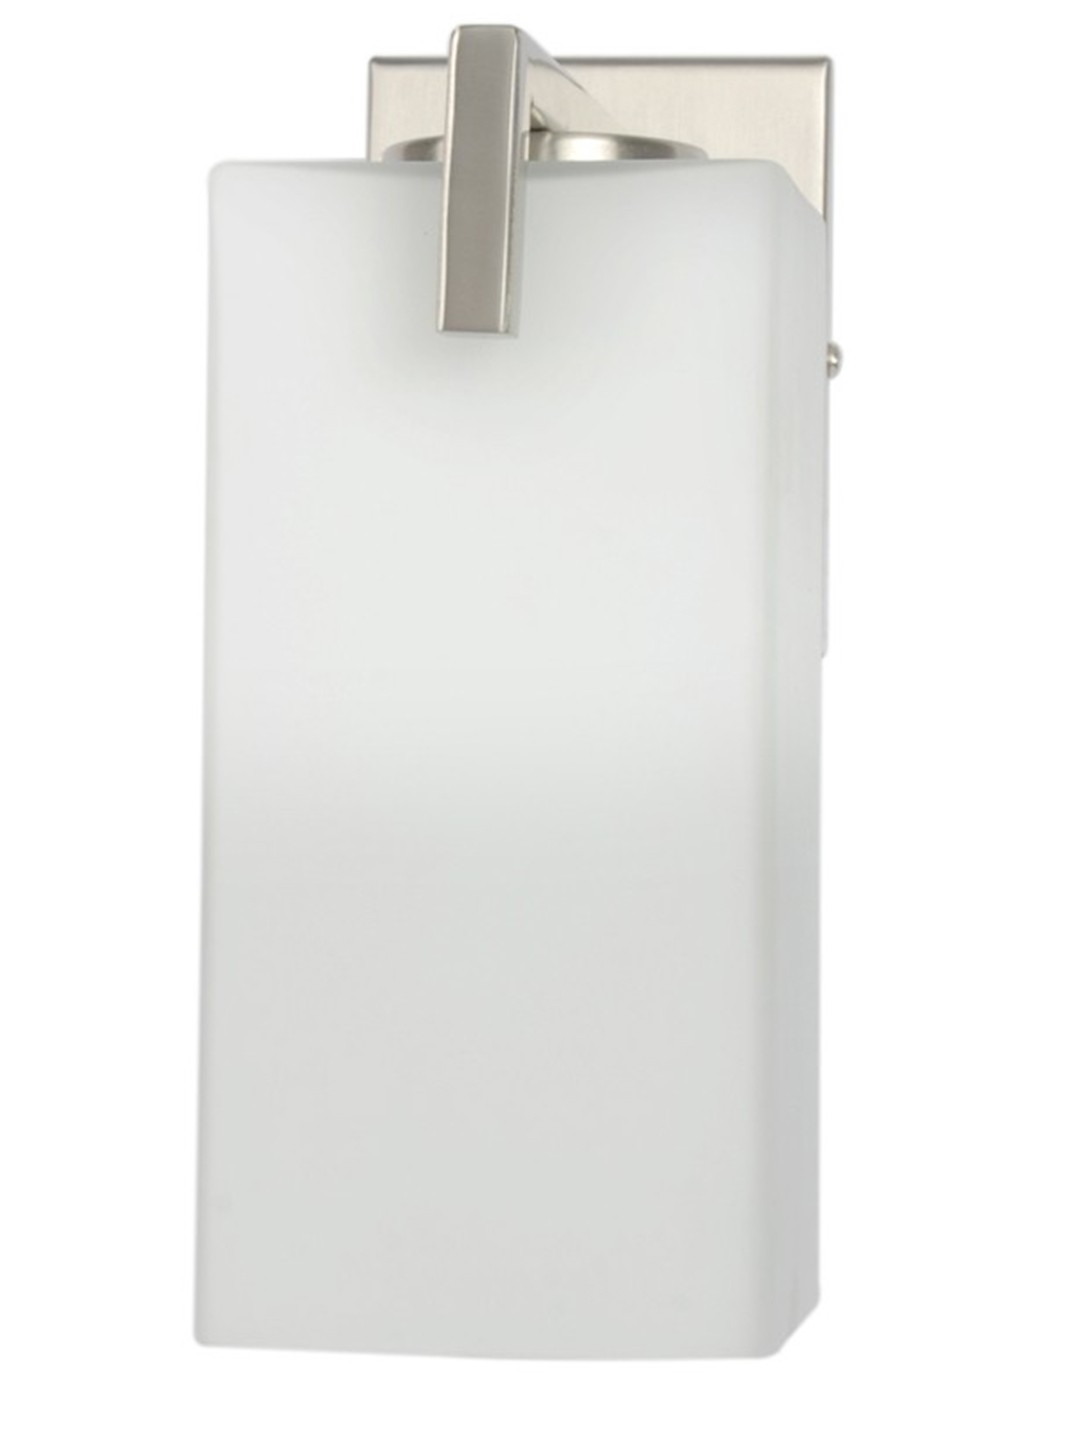 Clean Modern Cuboid Wall Light